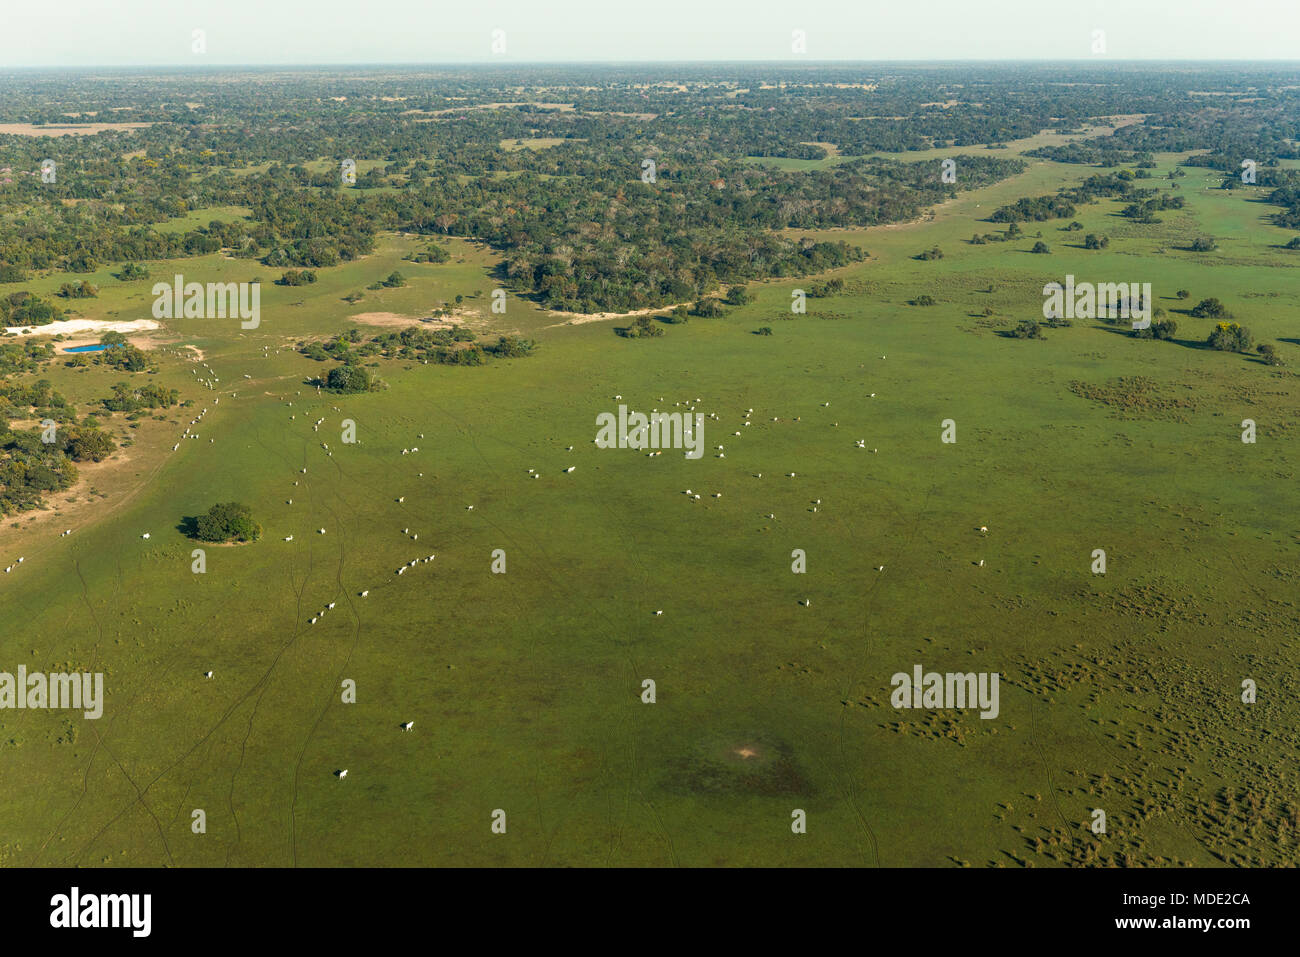 Cattle ranch in the Pantanal of Brazil - Stock Image